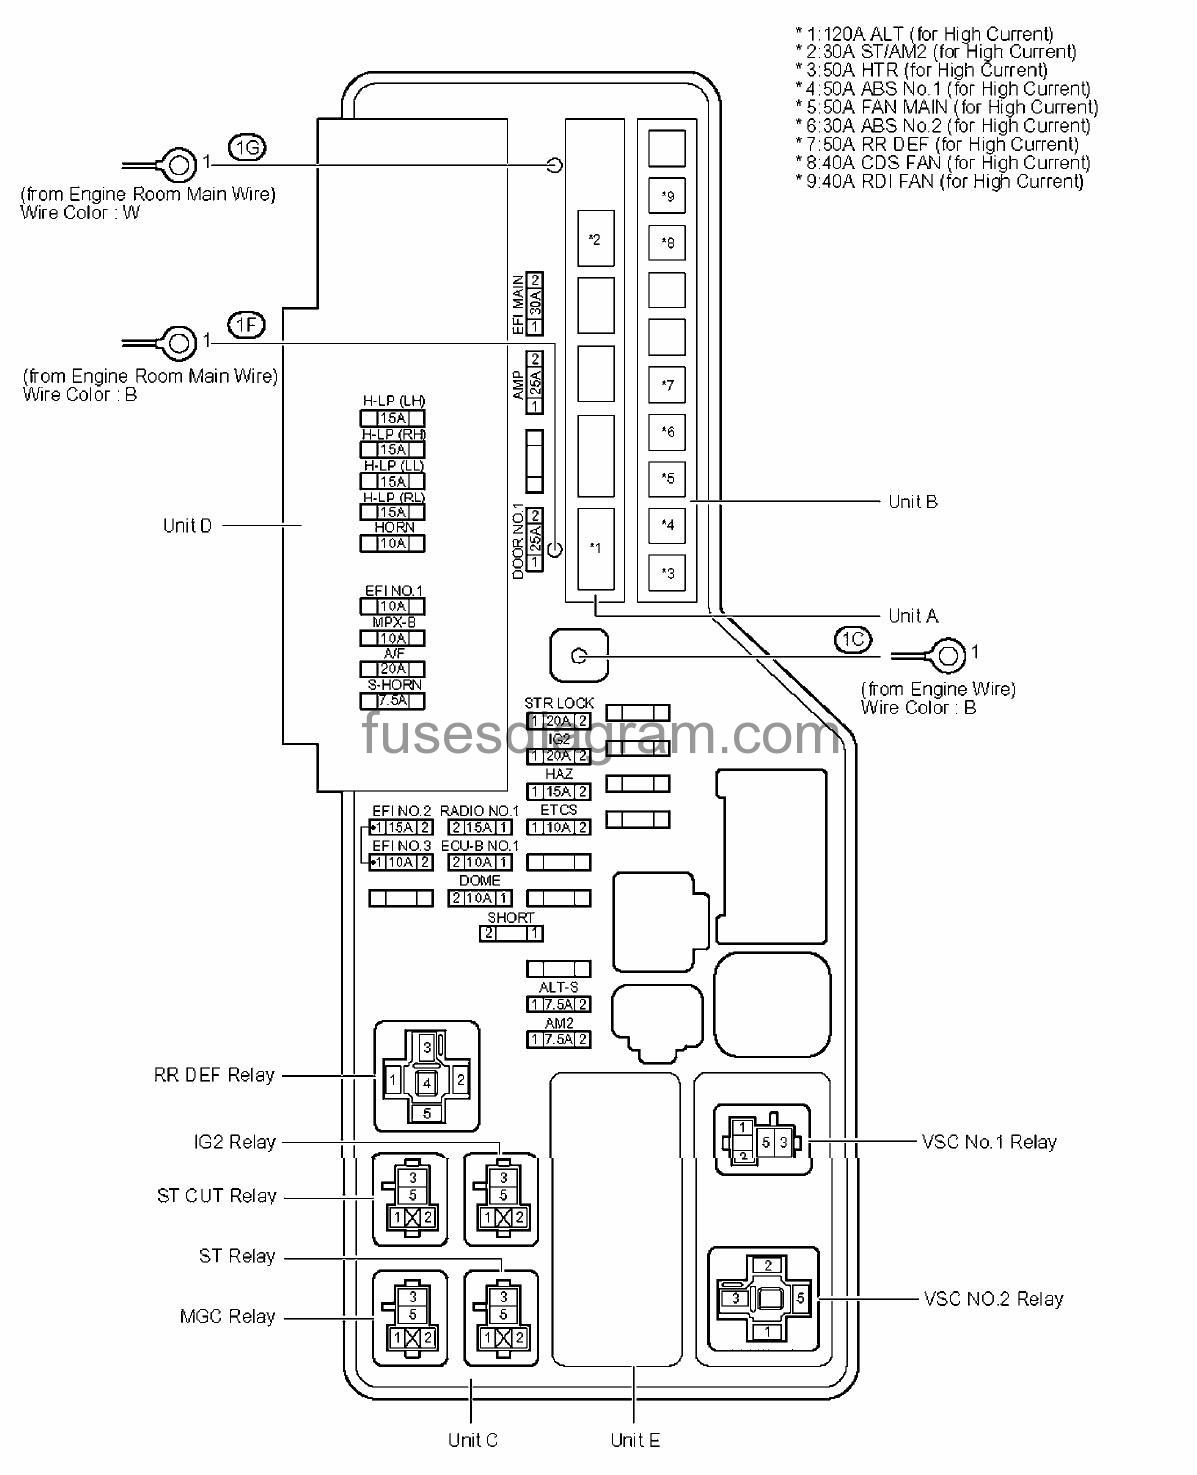 [TVPR_3874]  99 Camry Fuse Diagram - 88961867 Gm Distributor Wiring Diagram - pipiiing- layout.deco-doe3.decorresine.it | 2001 Camry Fuse Diagram |  | Wiring Diagram Resource